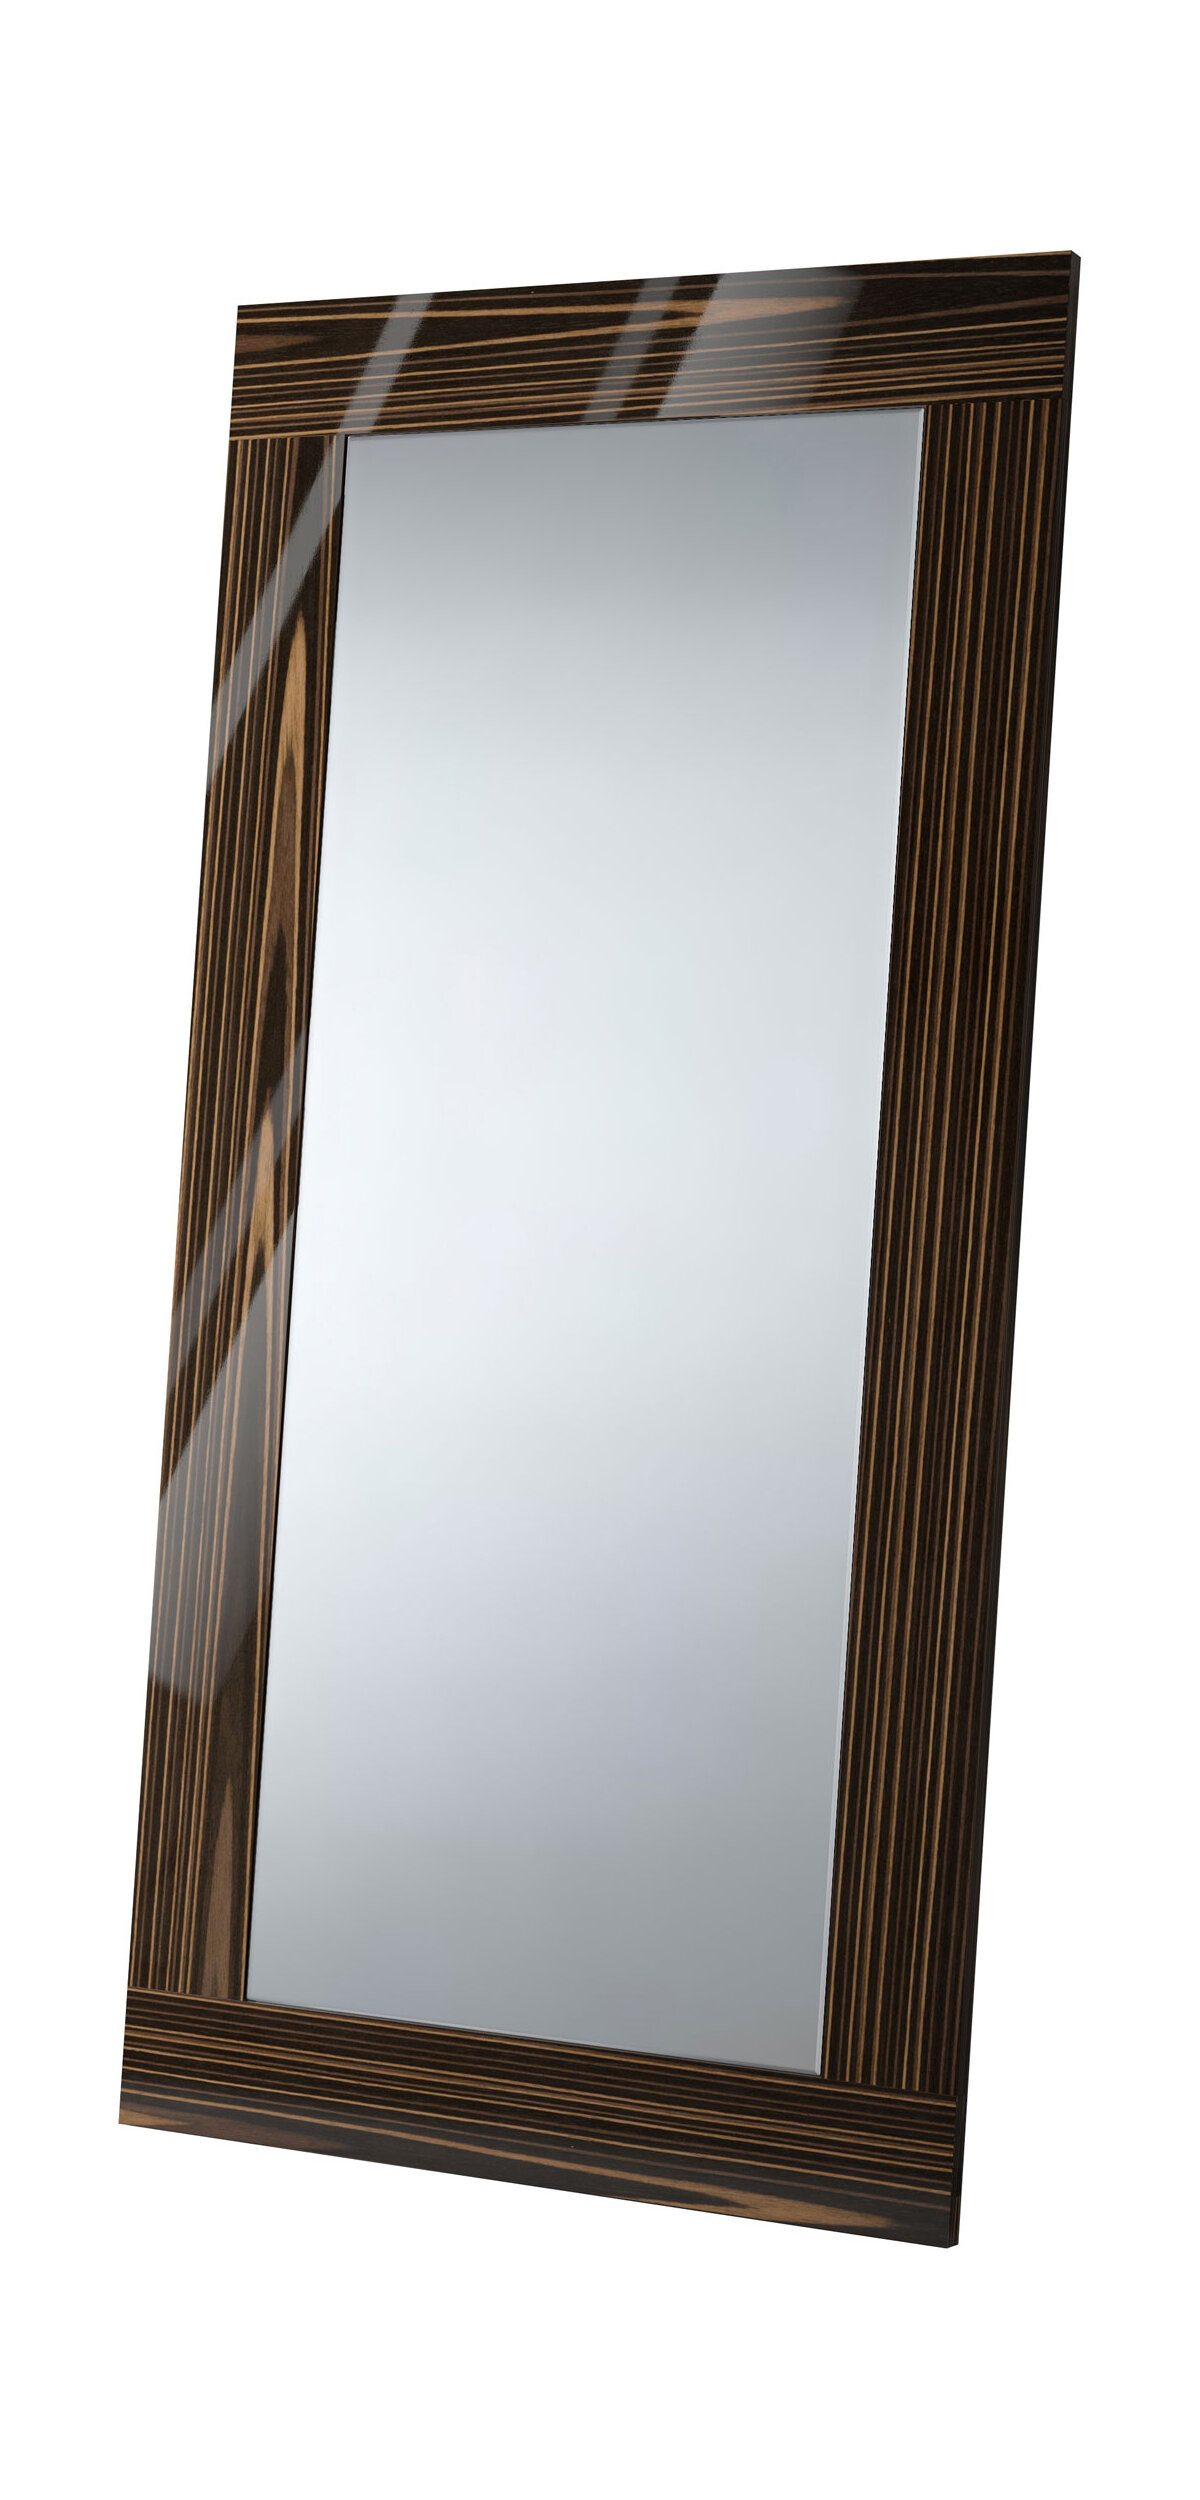 Cleobury Modern & Contemporary Full Length Mirror Pertaining To Modern & Contemporary Full Length Mirrors (View 20 of 30)